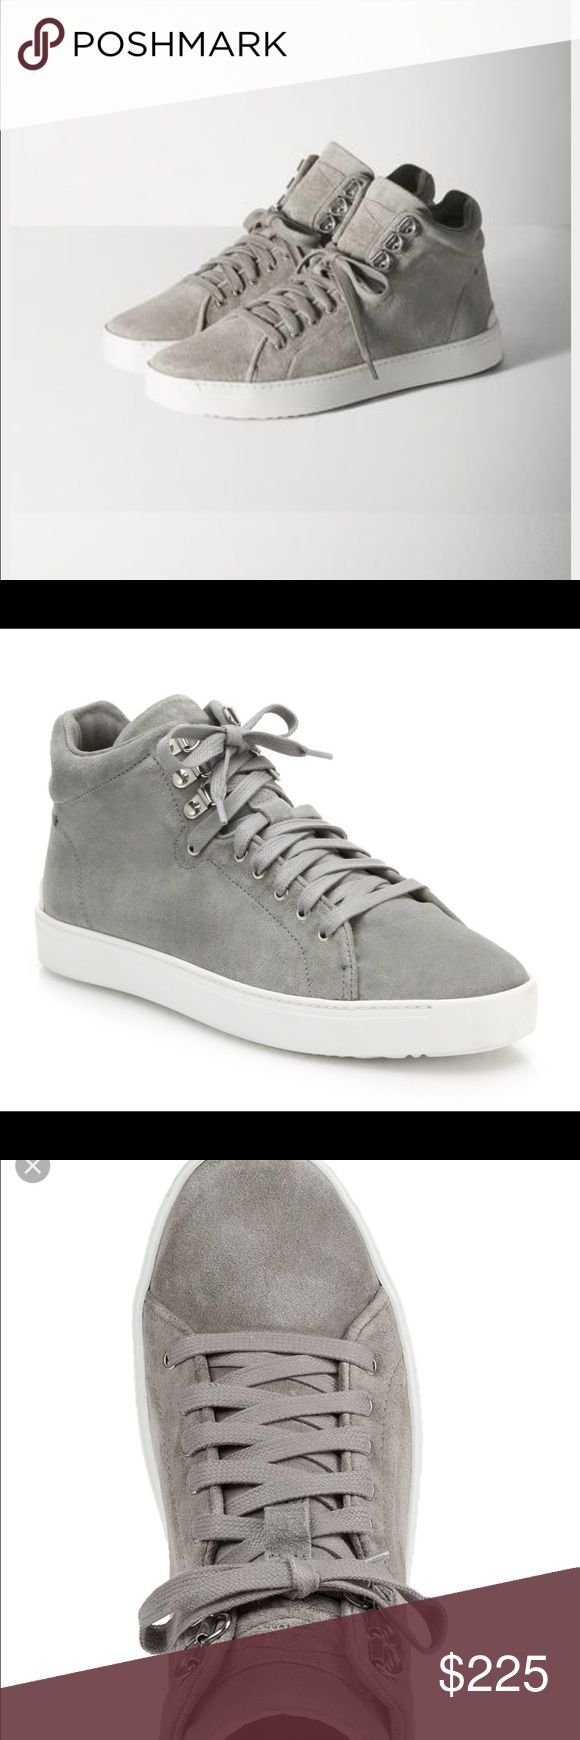 Rag and bone grey suede Kent high top sneakers Brand new never worn!  Such comfortable sneakers.  No trades! rag & bone Shoes Sneakers